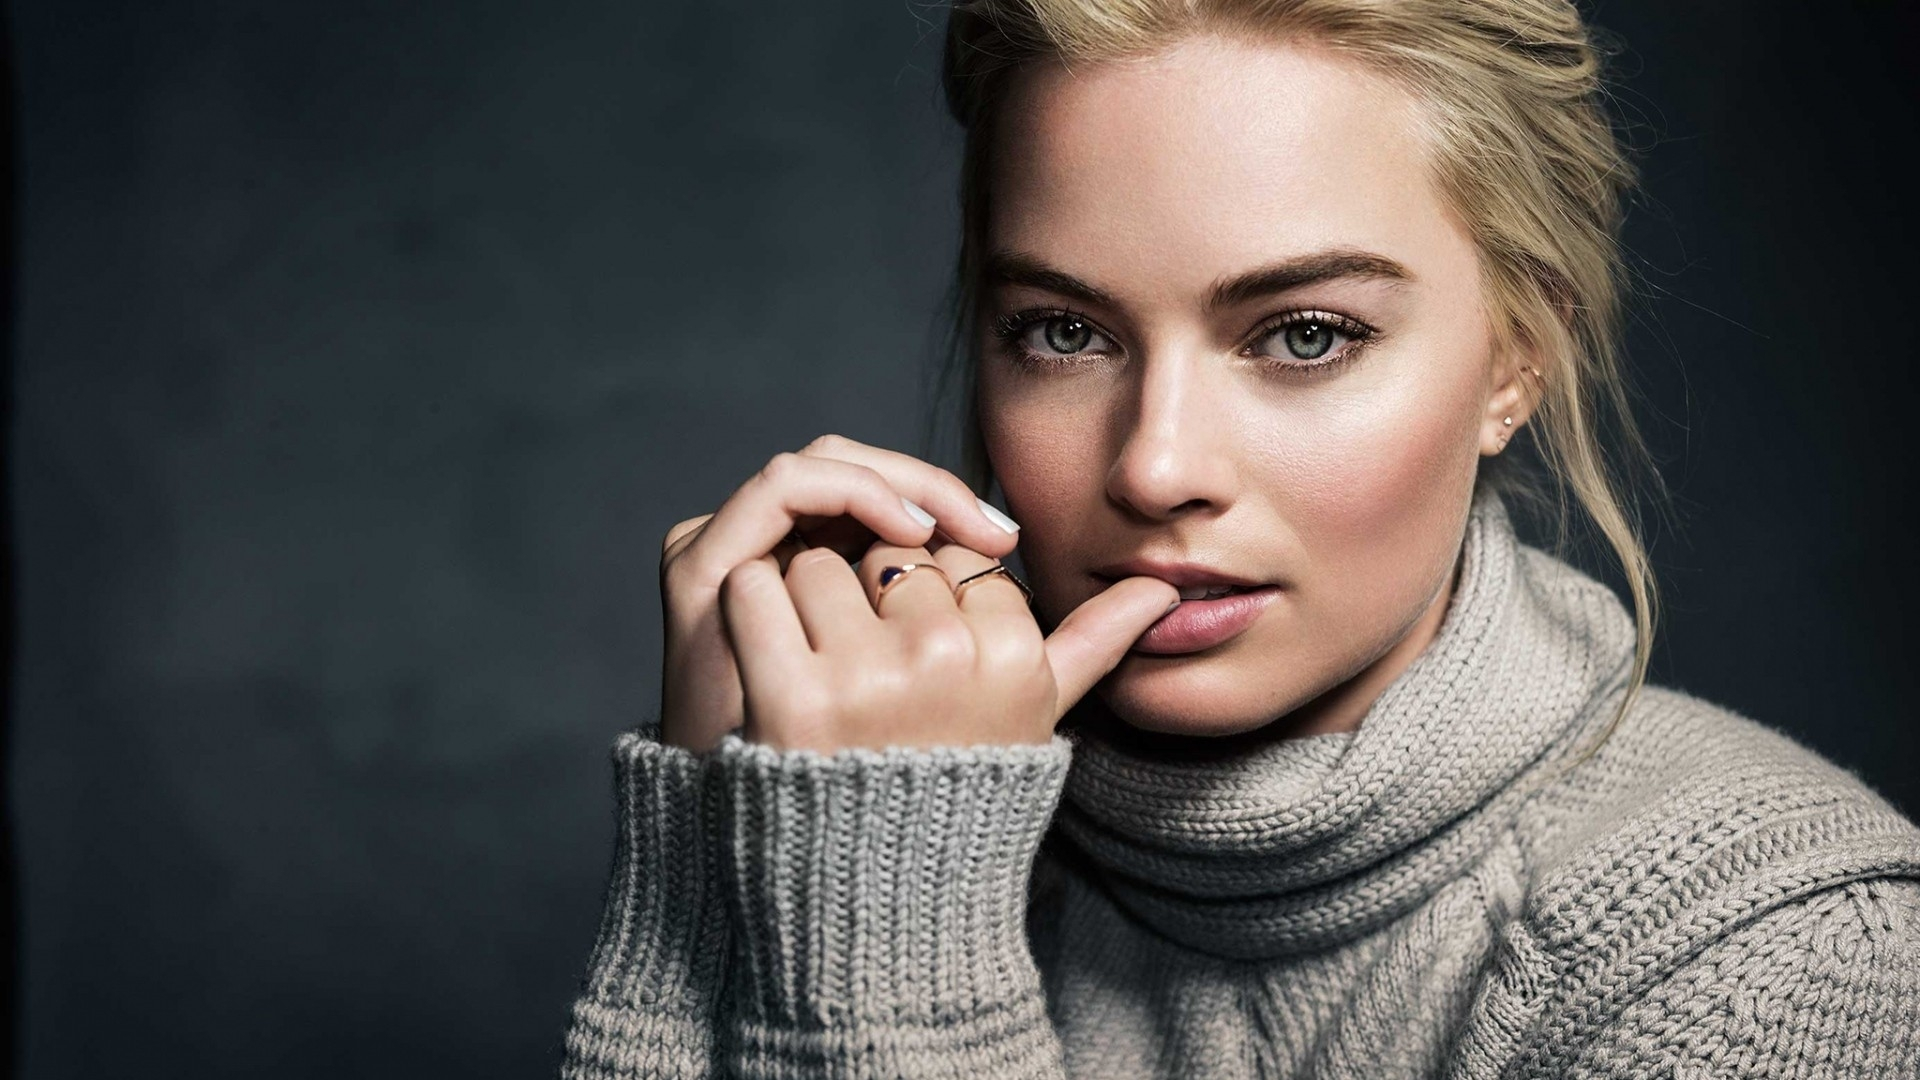 lovely margot robbie hollywood actress hd wallpaper 5 - wallpaper